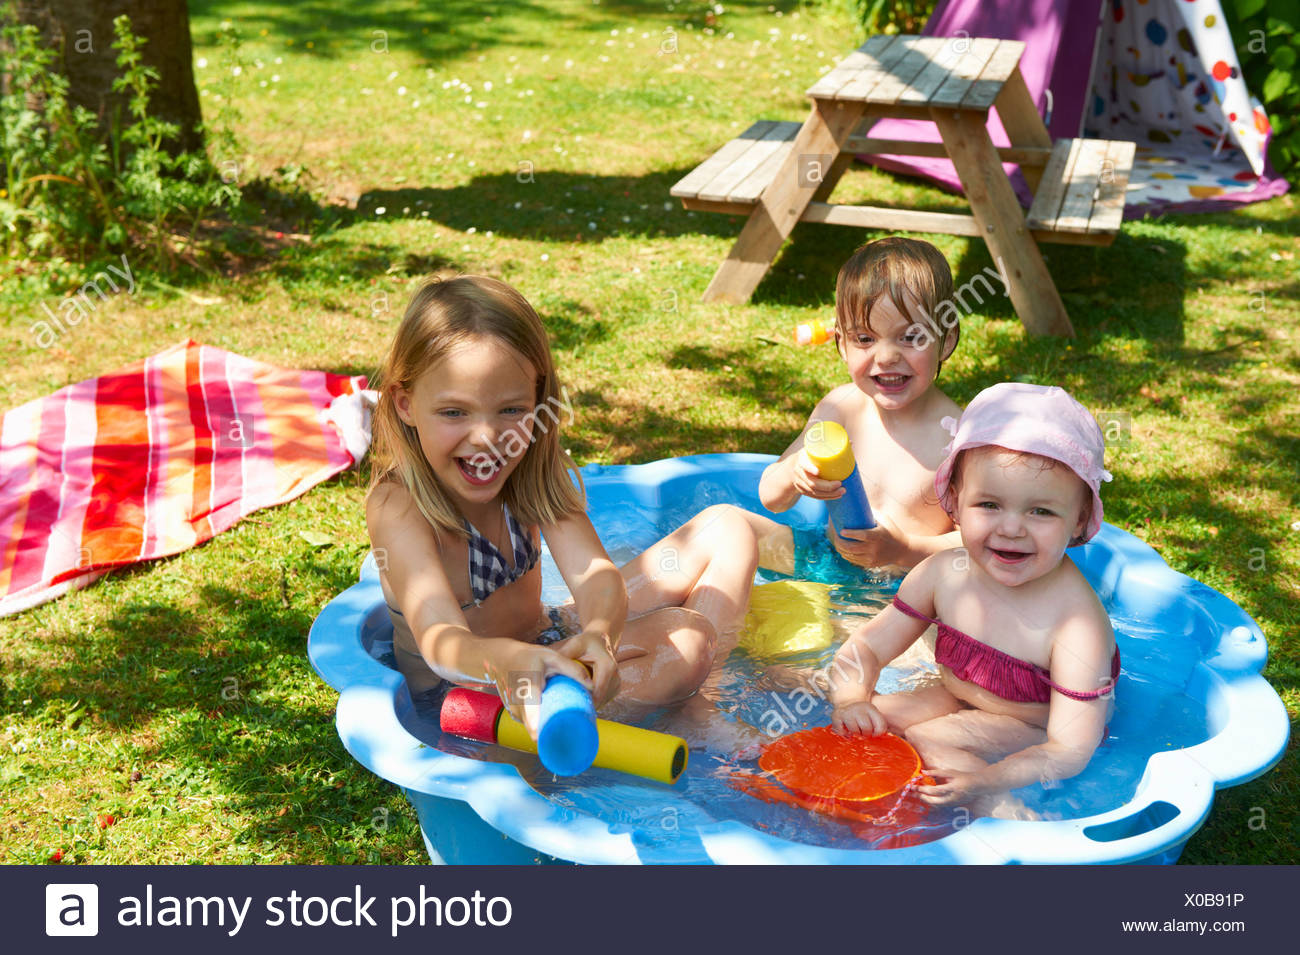 Children playing in wading pool - Stock Image